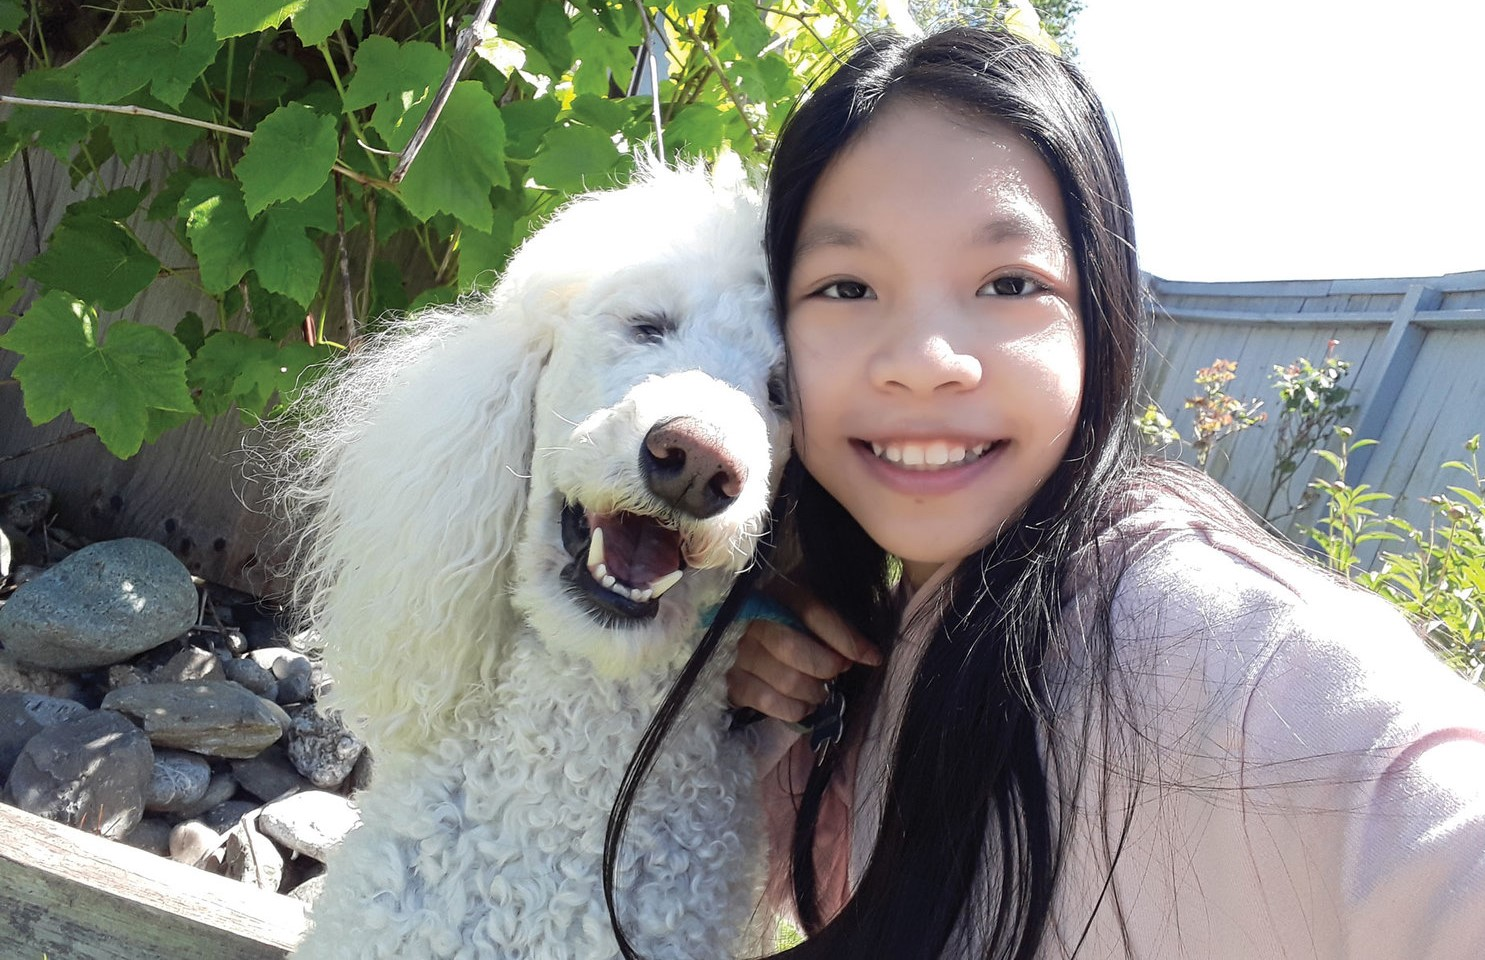 Photo of girl and dog